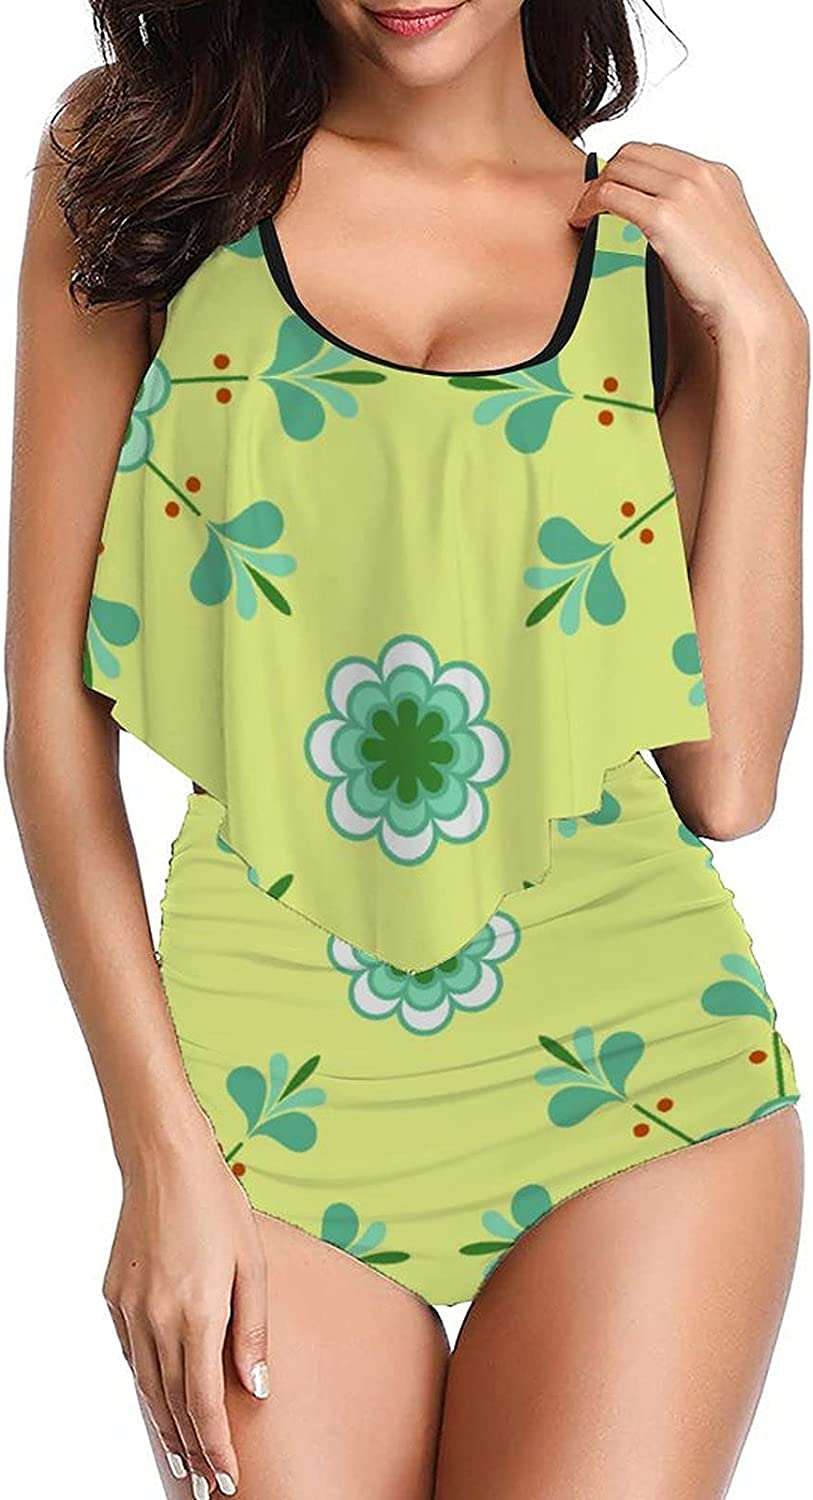 Women Pattern-15 Swimsuit Design Tankinis top with High Waisted Bottom Bikinis Set Two Pieces Bathing Suits